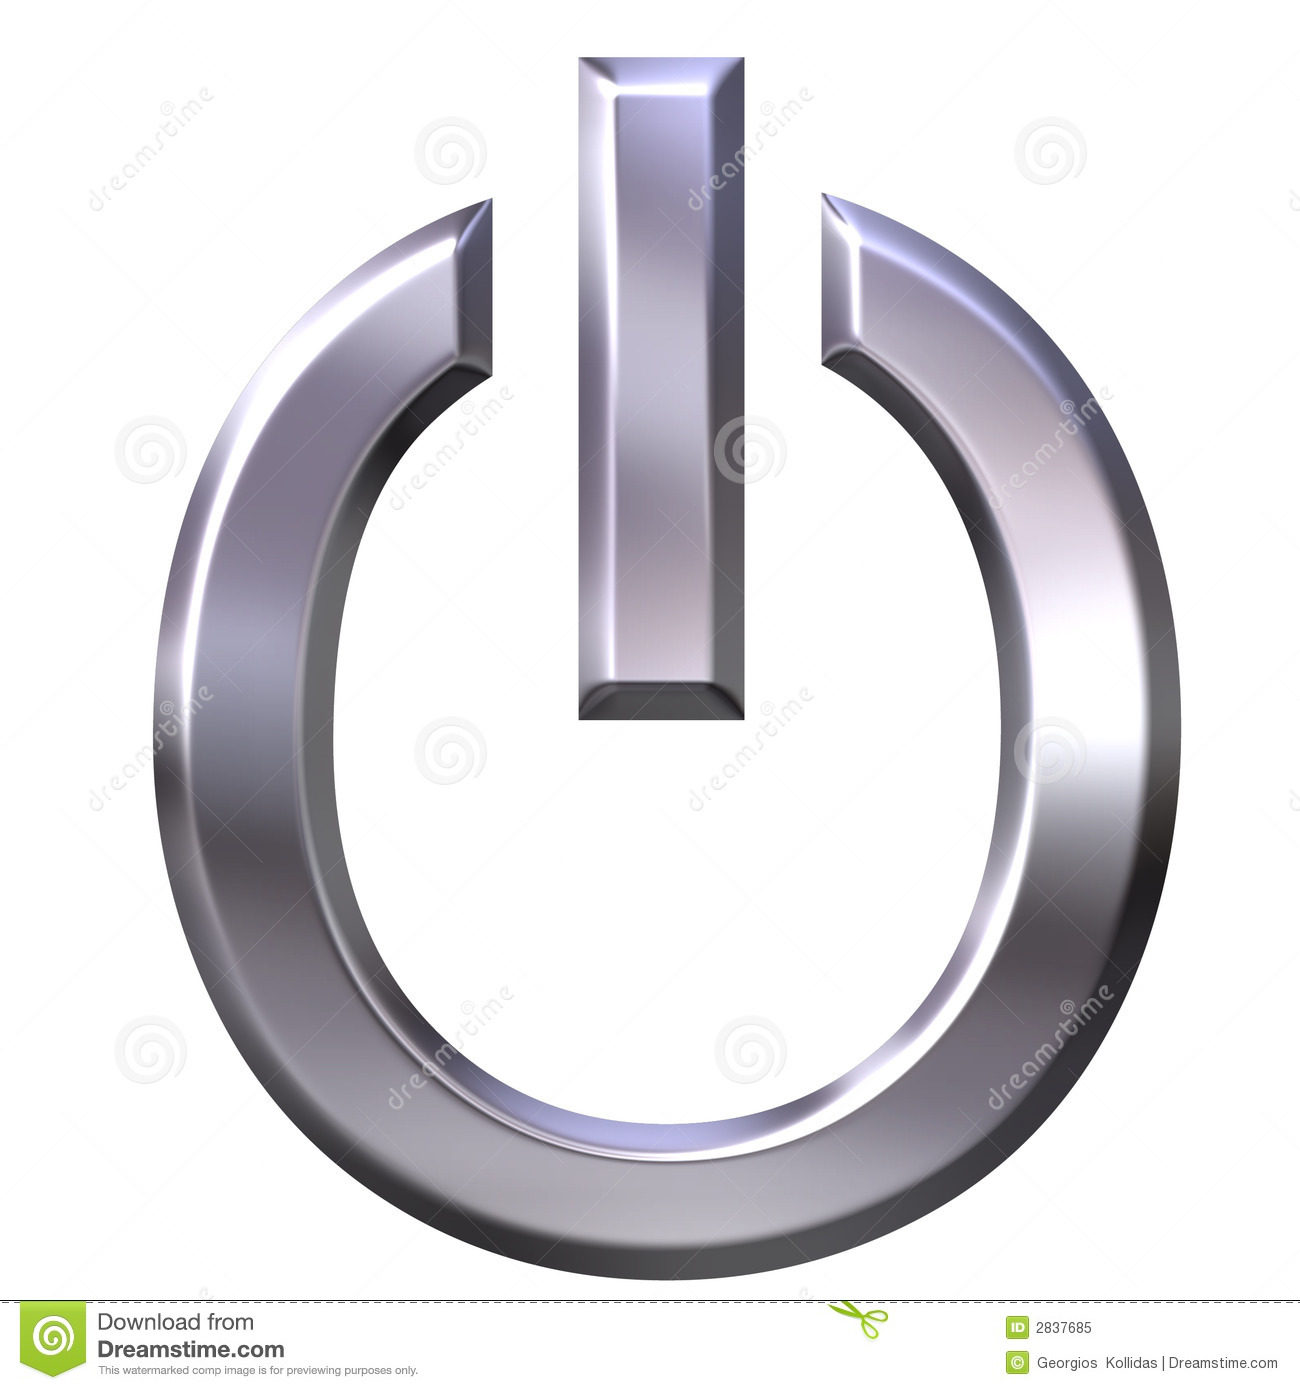 Power Symbol isolated in white.